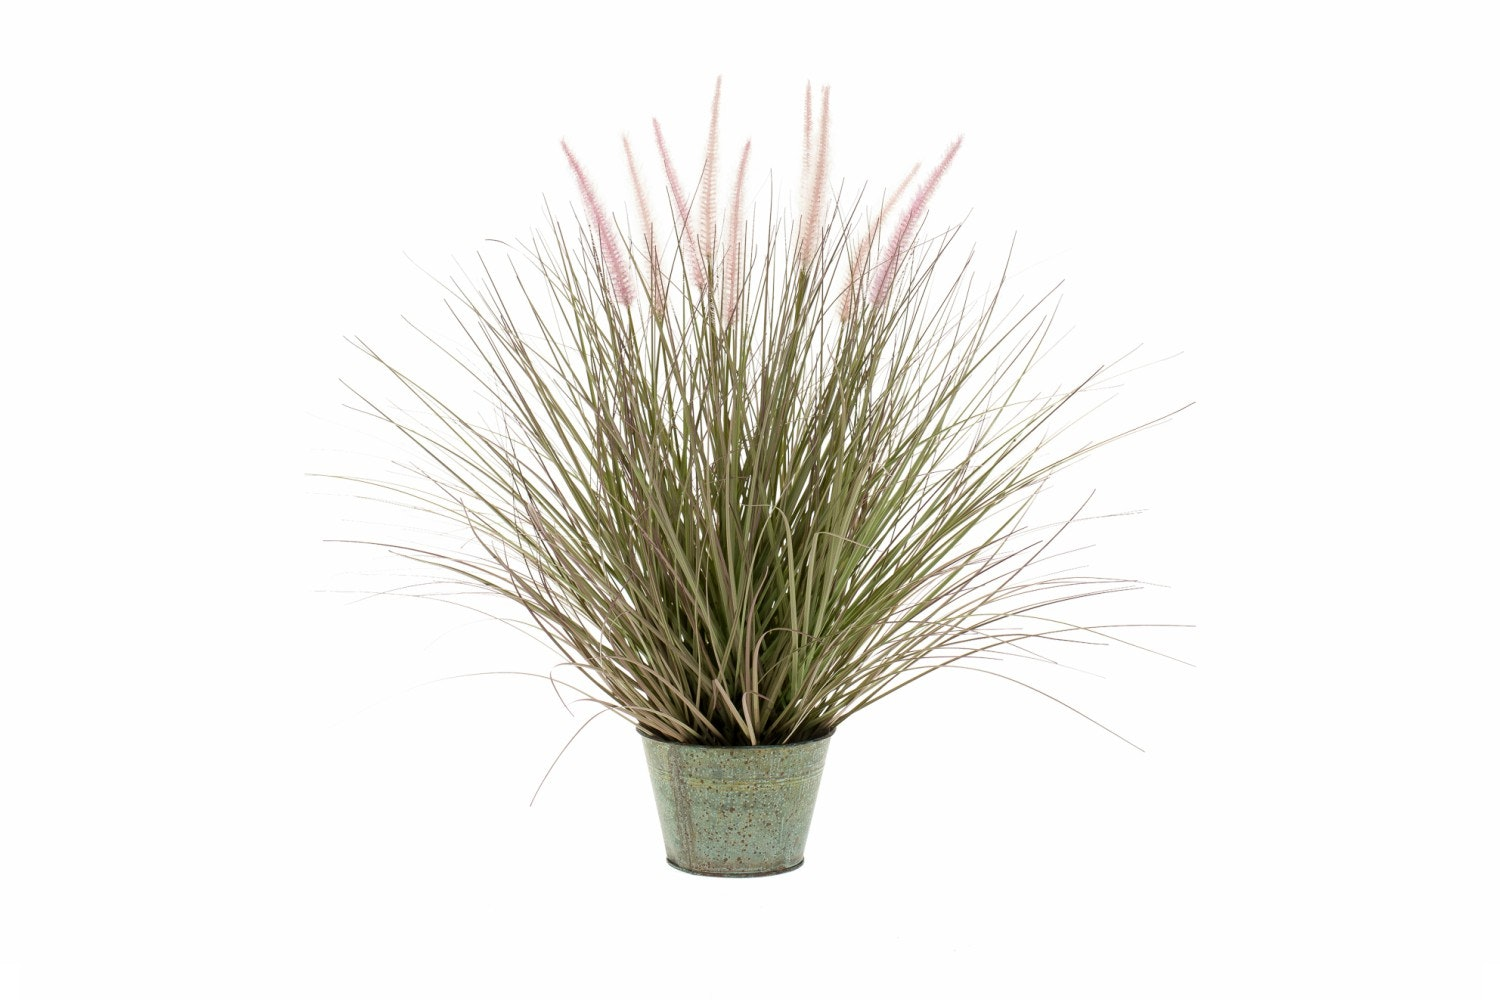 Pennisetum Grass In Zinc Pot